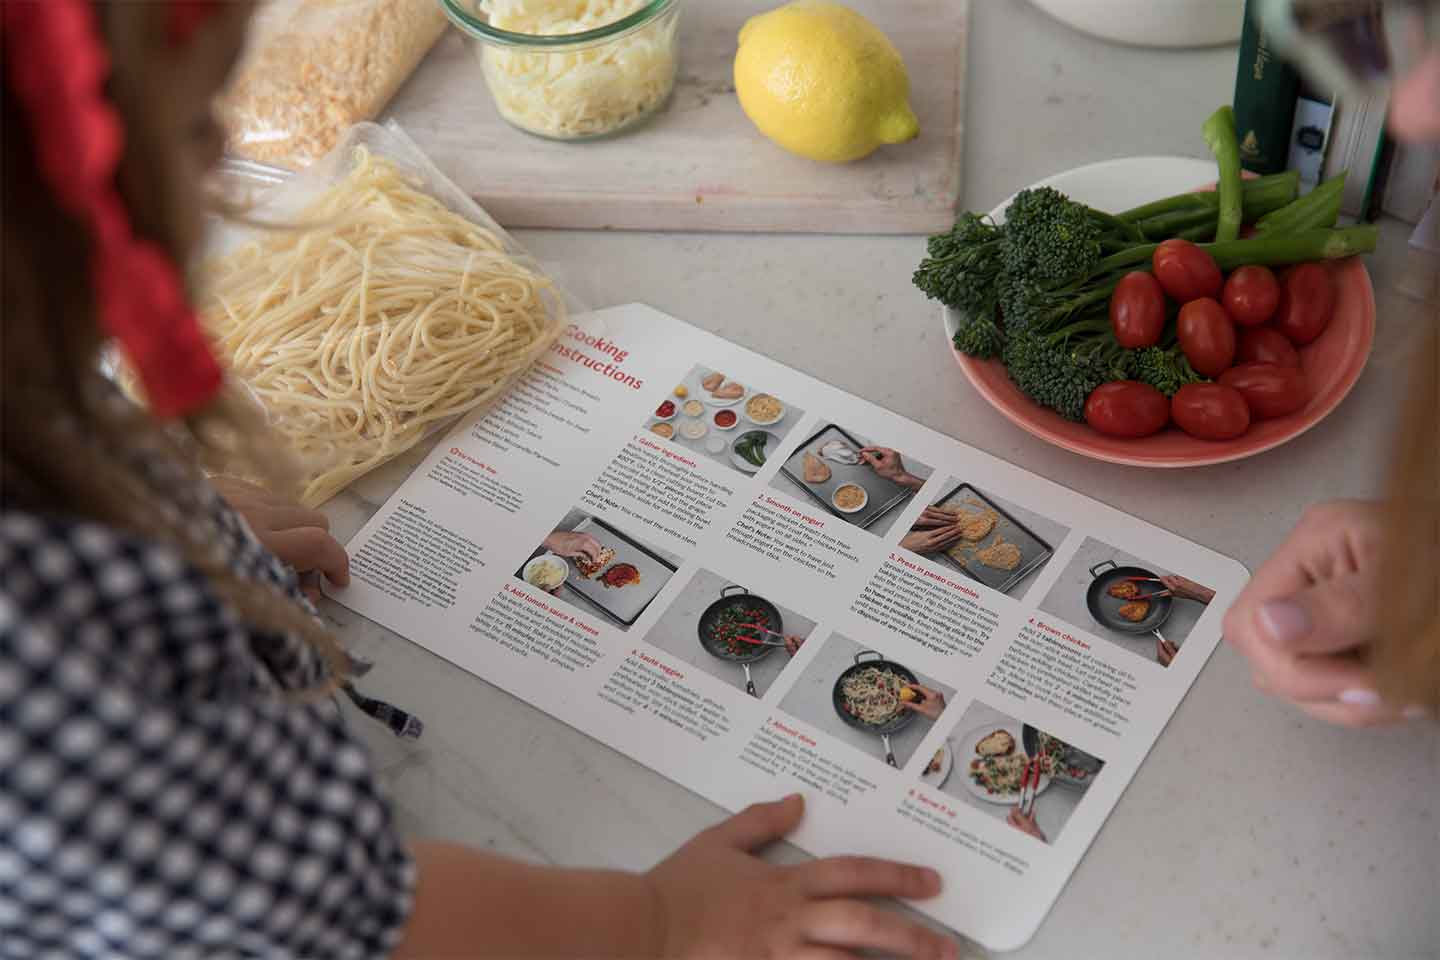 Chick-fil-a Mealtime Kit Boxes – Recipe and ingredients